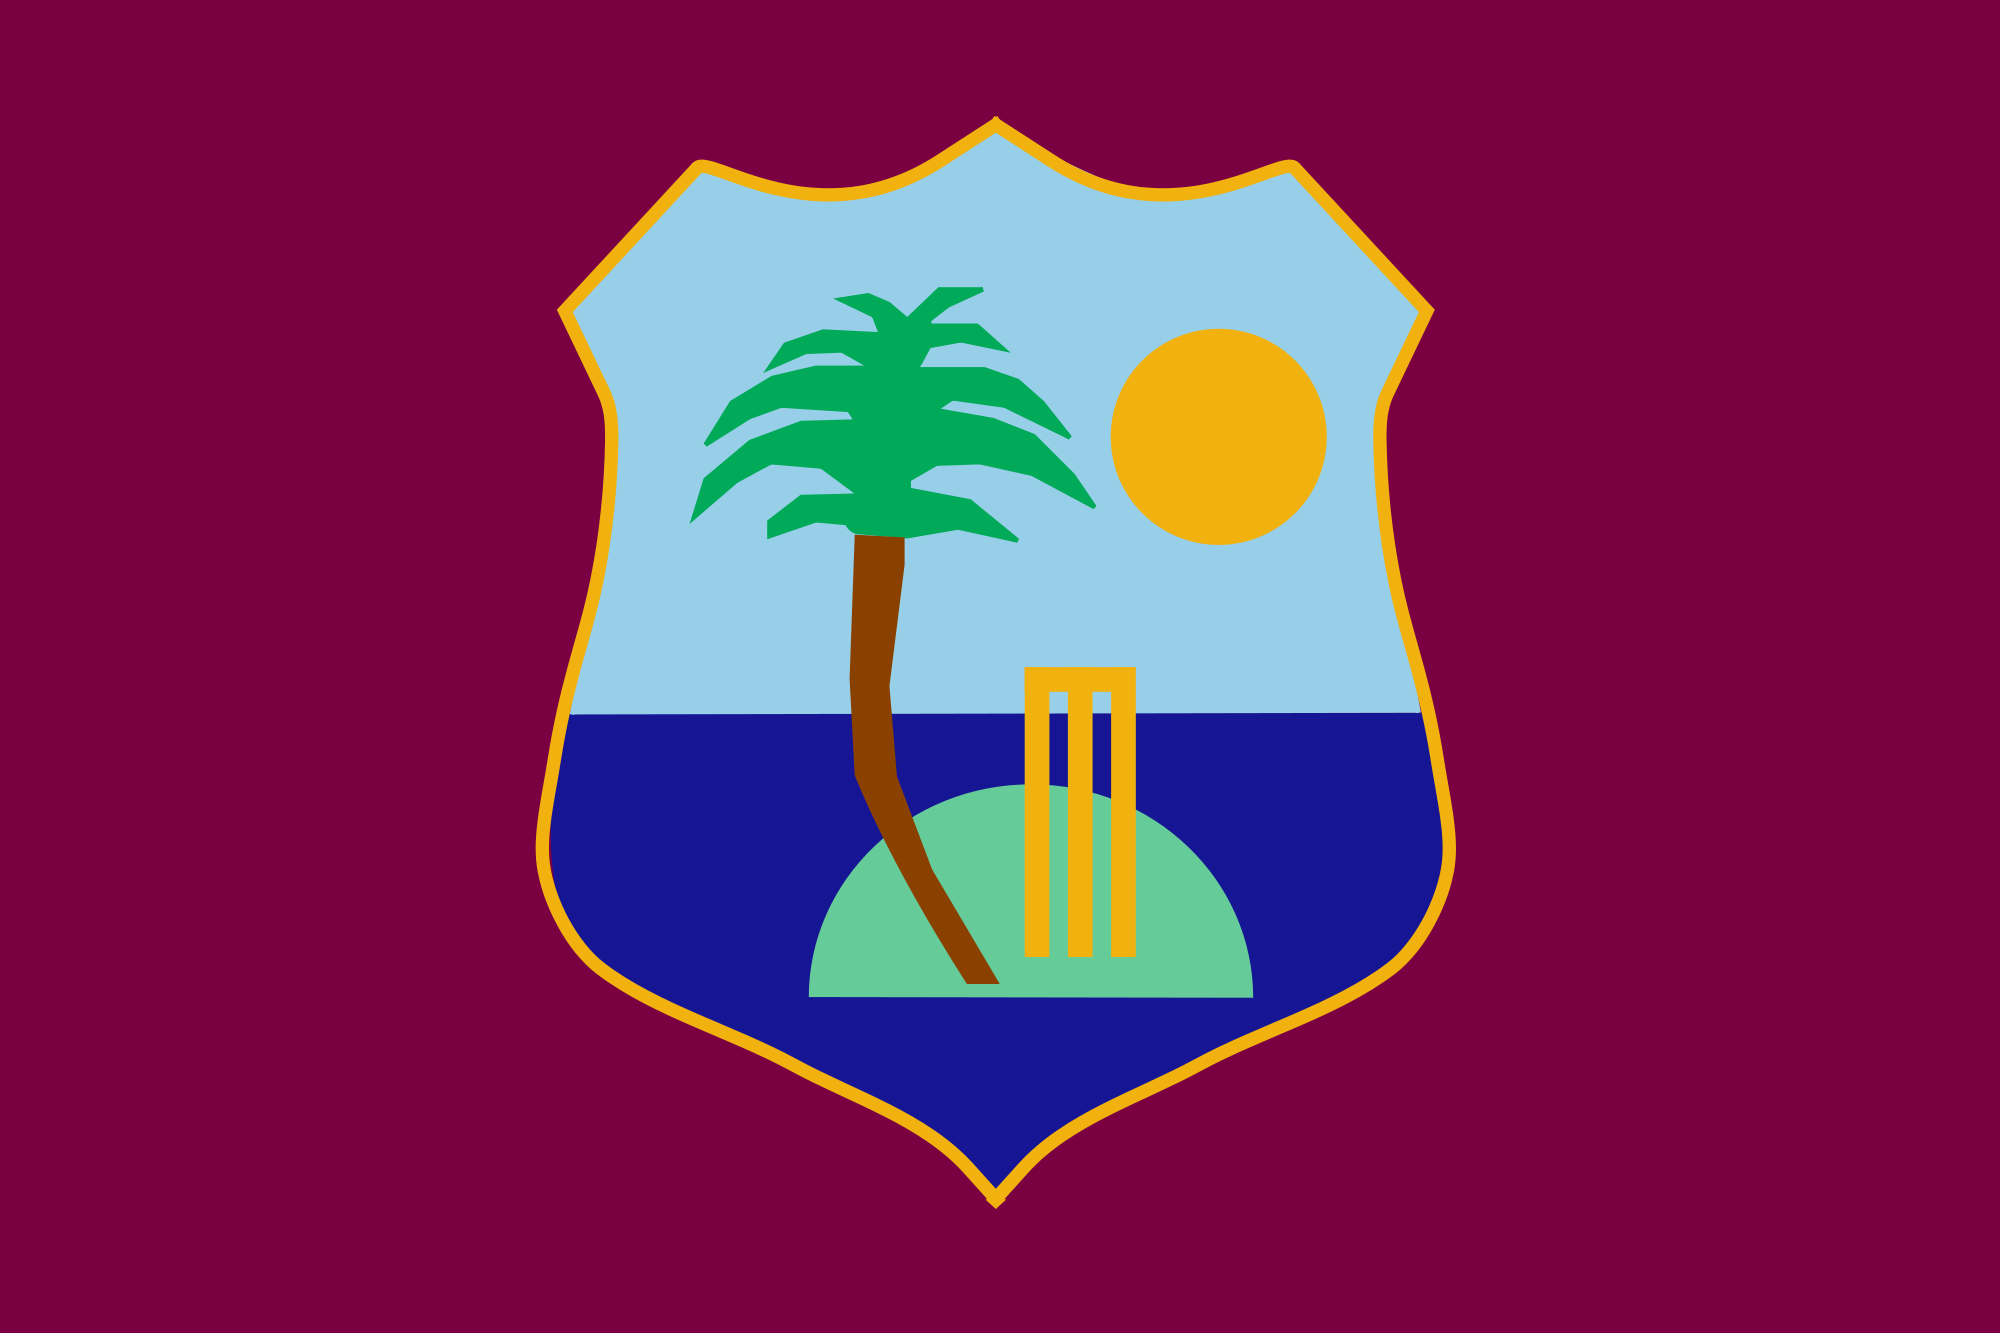 congratulations west indies both men and womens teams in